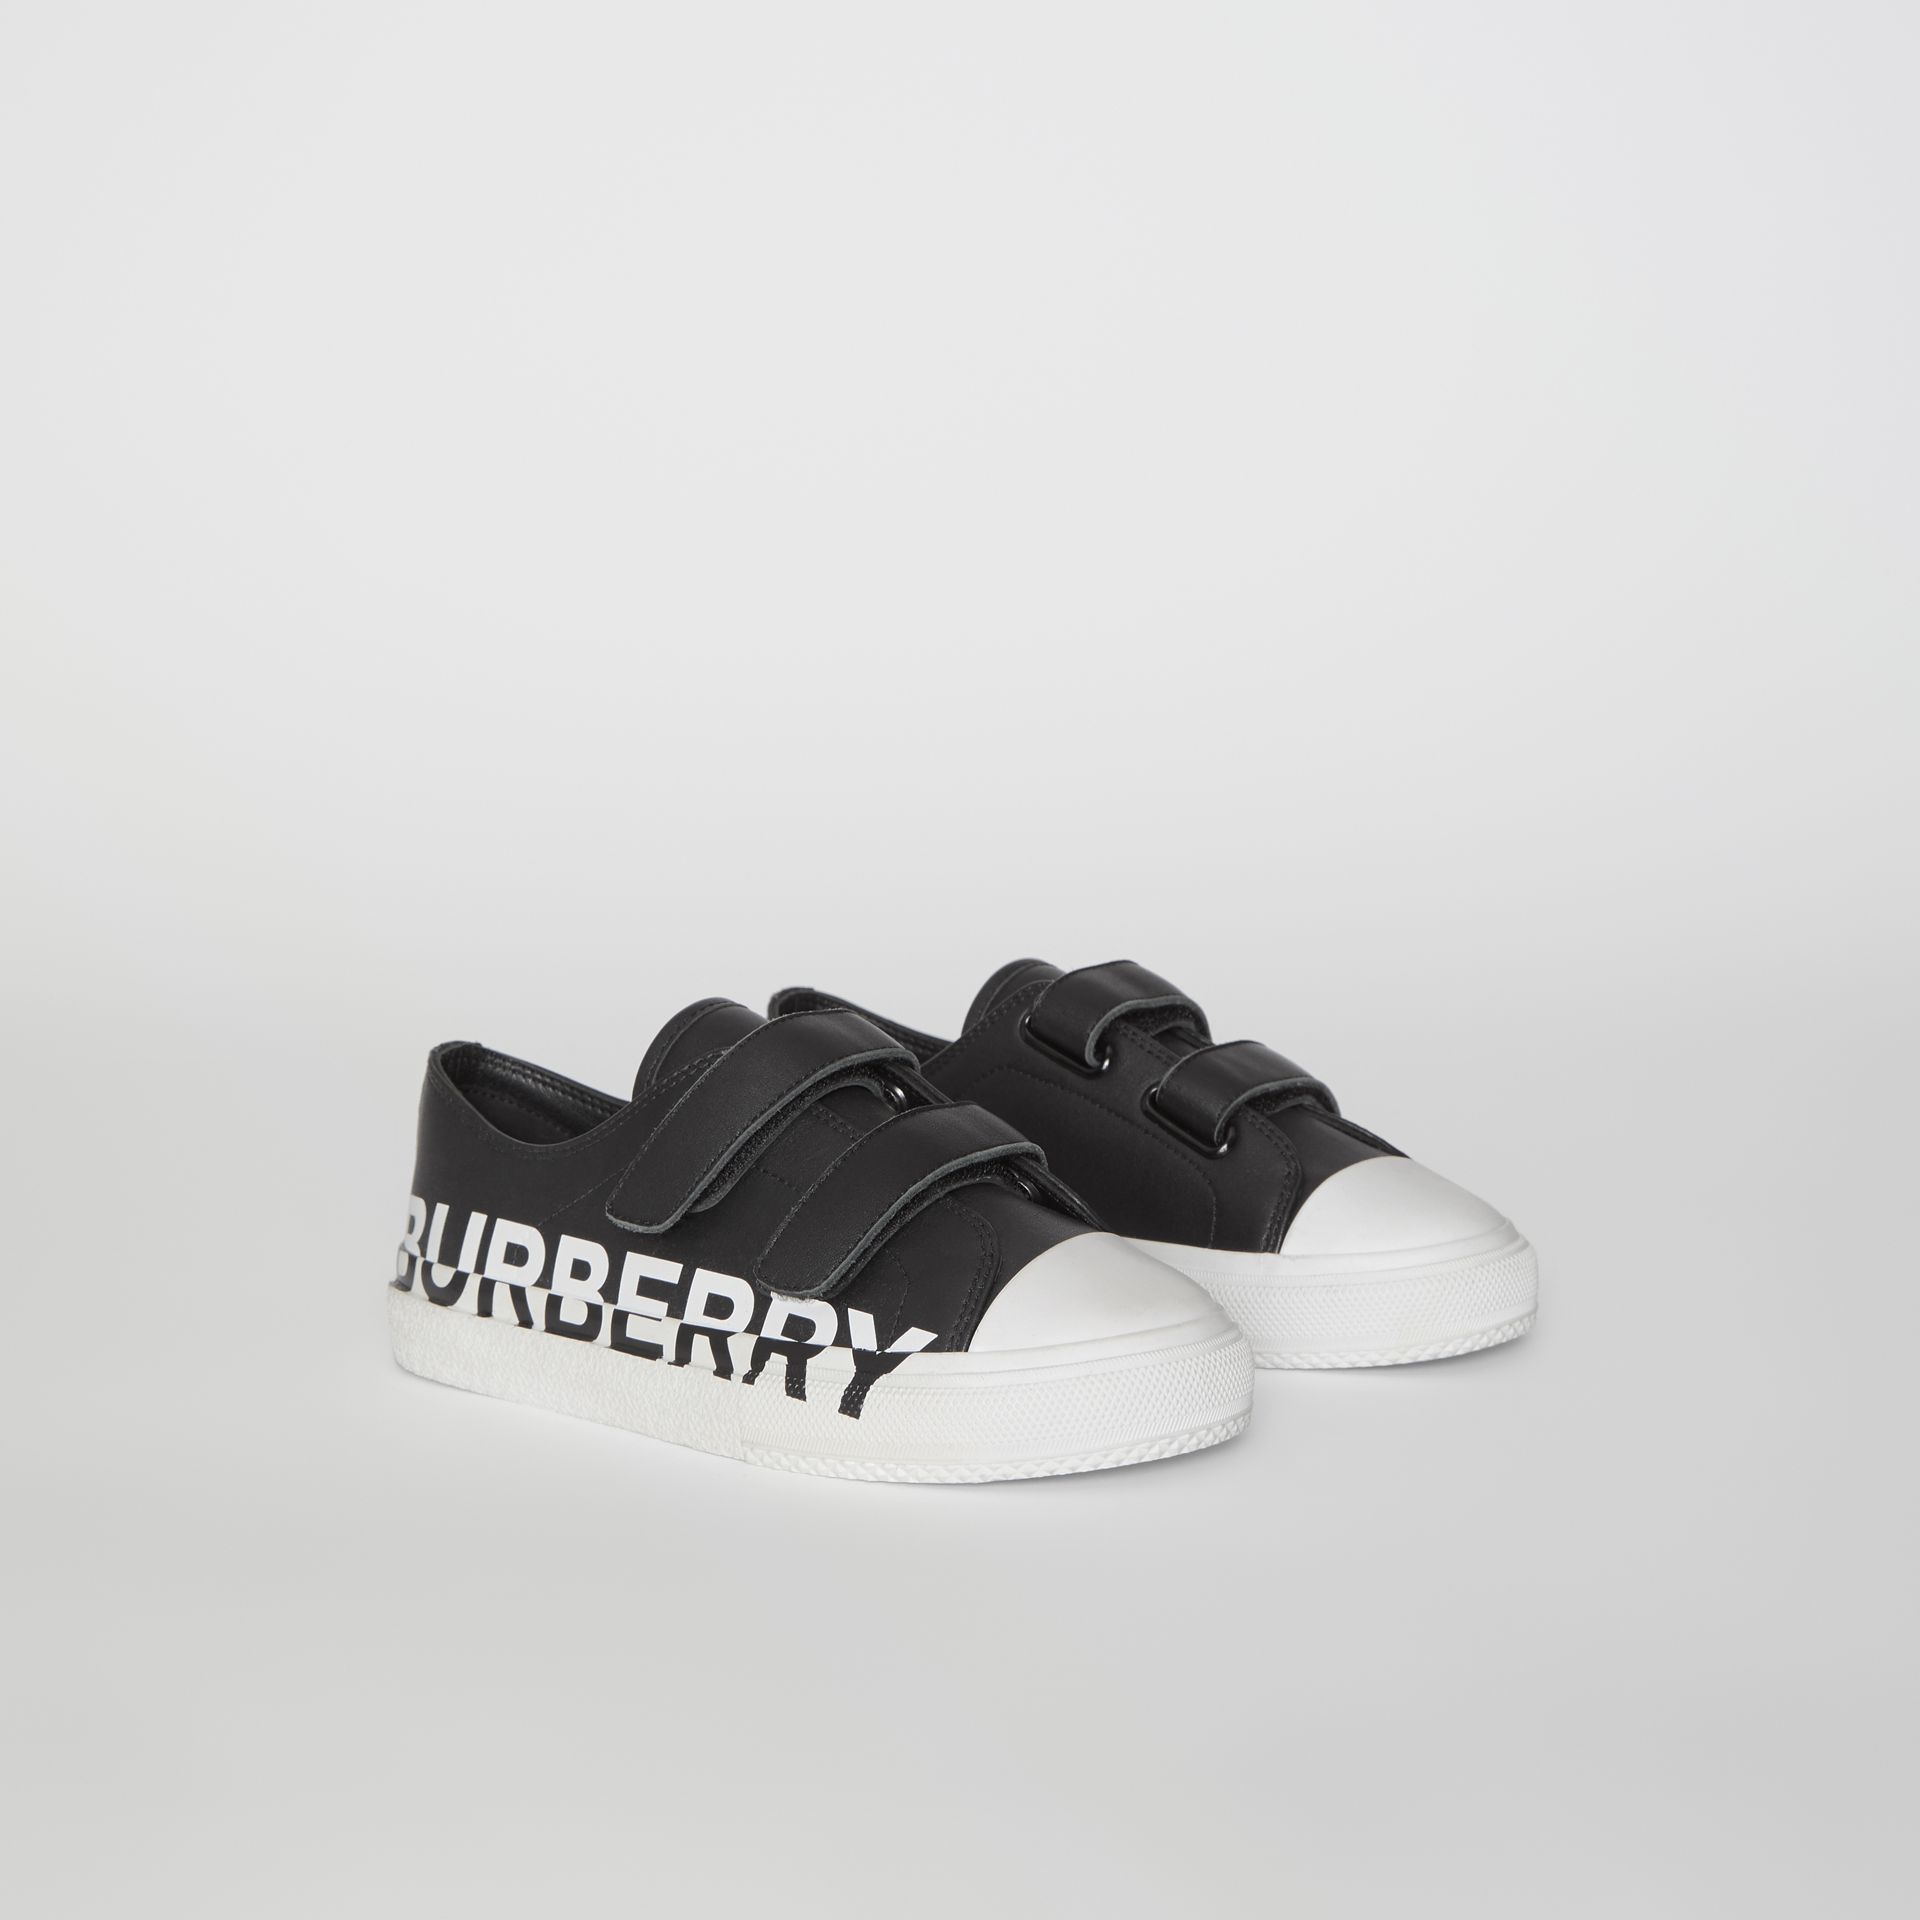 Logo Print Two-tone Leather Sneakers in Black/white - Children | Burberry - gallery image 4